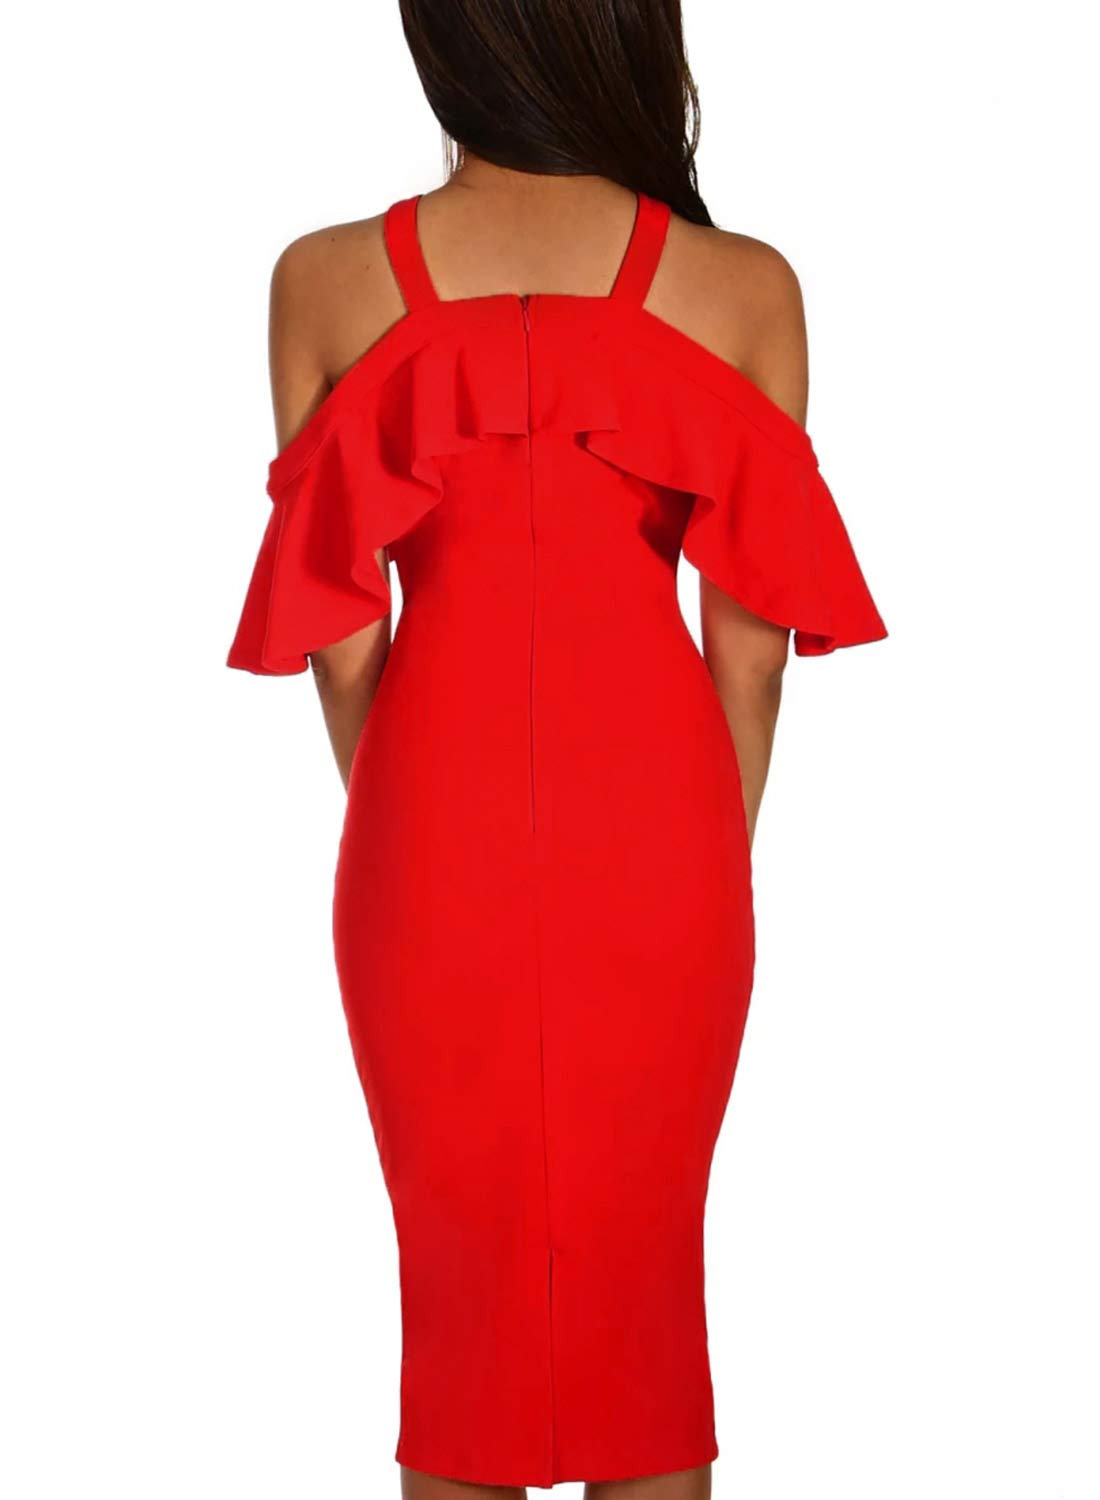 AlvaQ Womens Laides Sexy Ruffle Sleeve Frill Halter Criss Cross Cold Shoulder Party Cocktail Wedding Bodycon Midi Knee Length Dress Red Small by AlvaQ (Image #2)